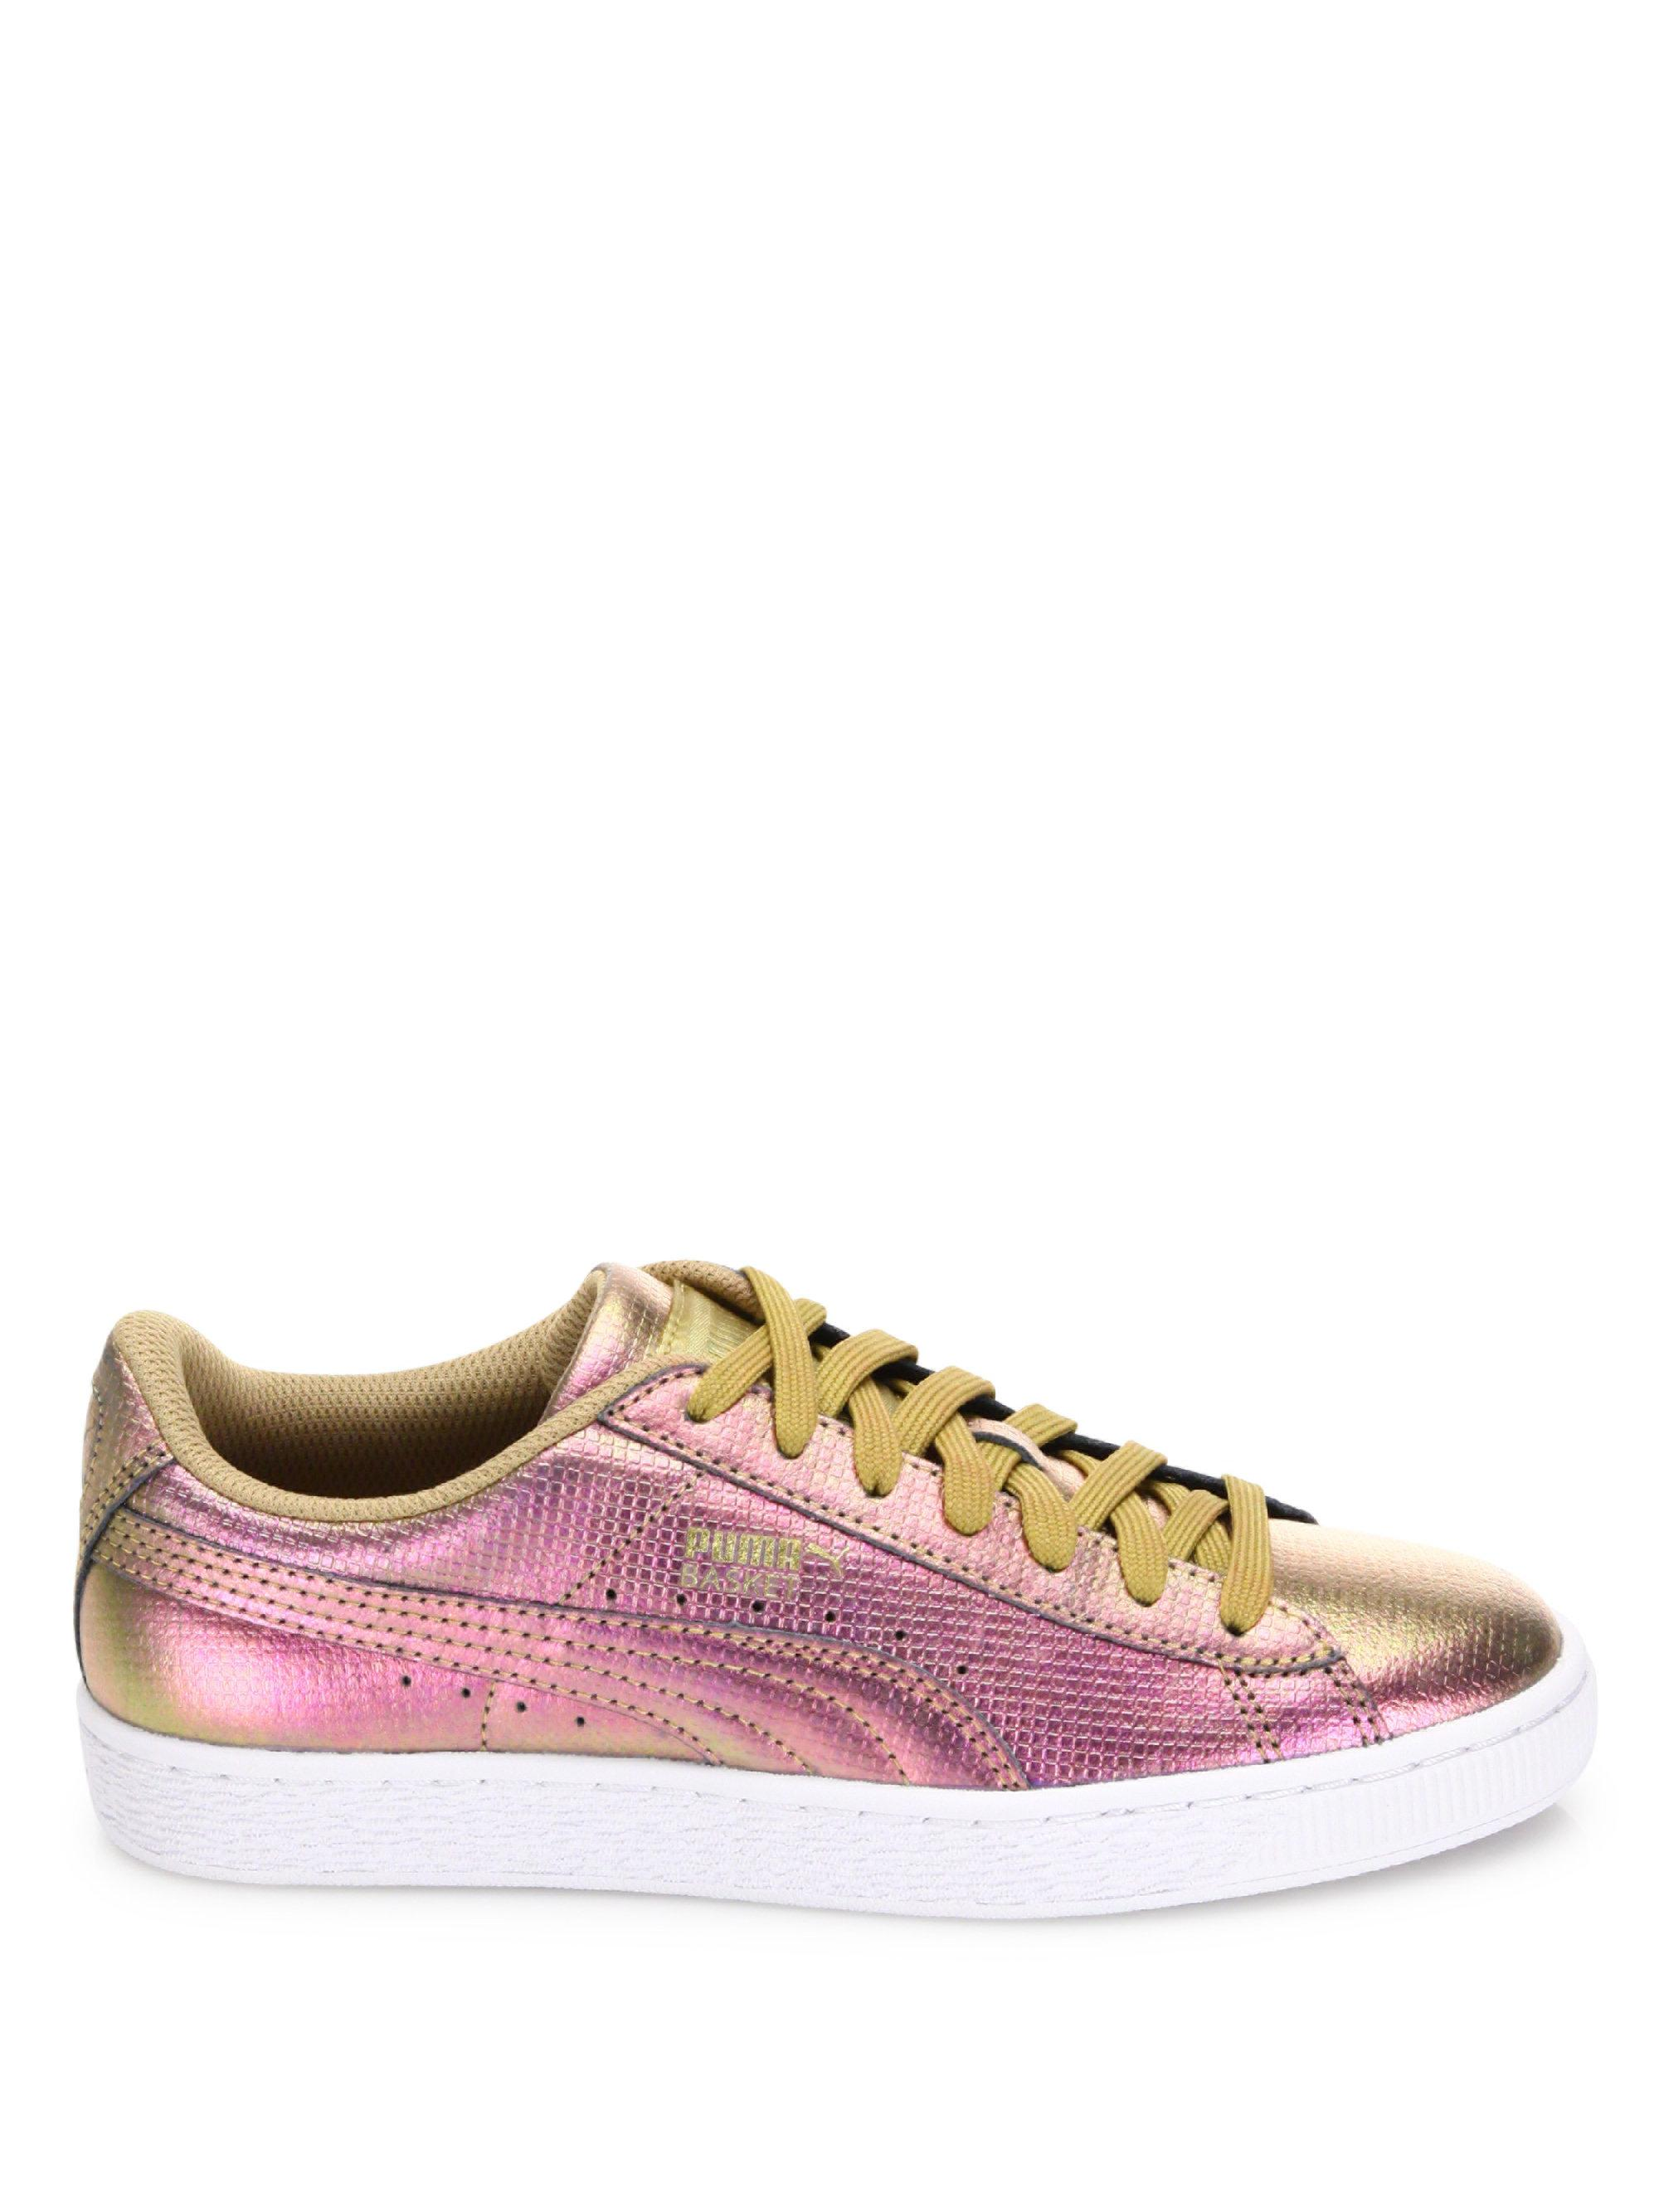 acd686961eb Lyst - PUMA Basket Holographic Leather Sneakers